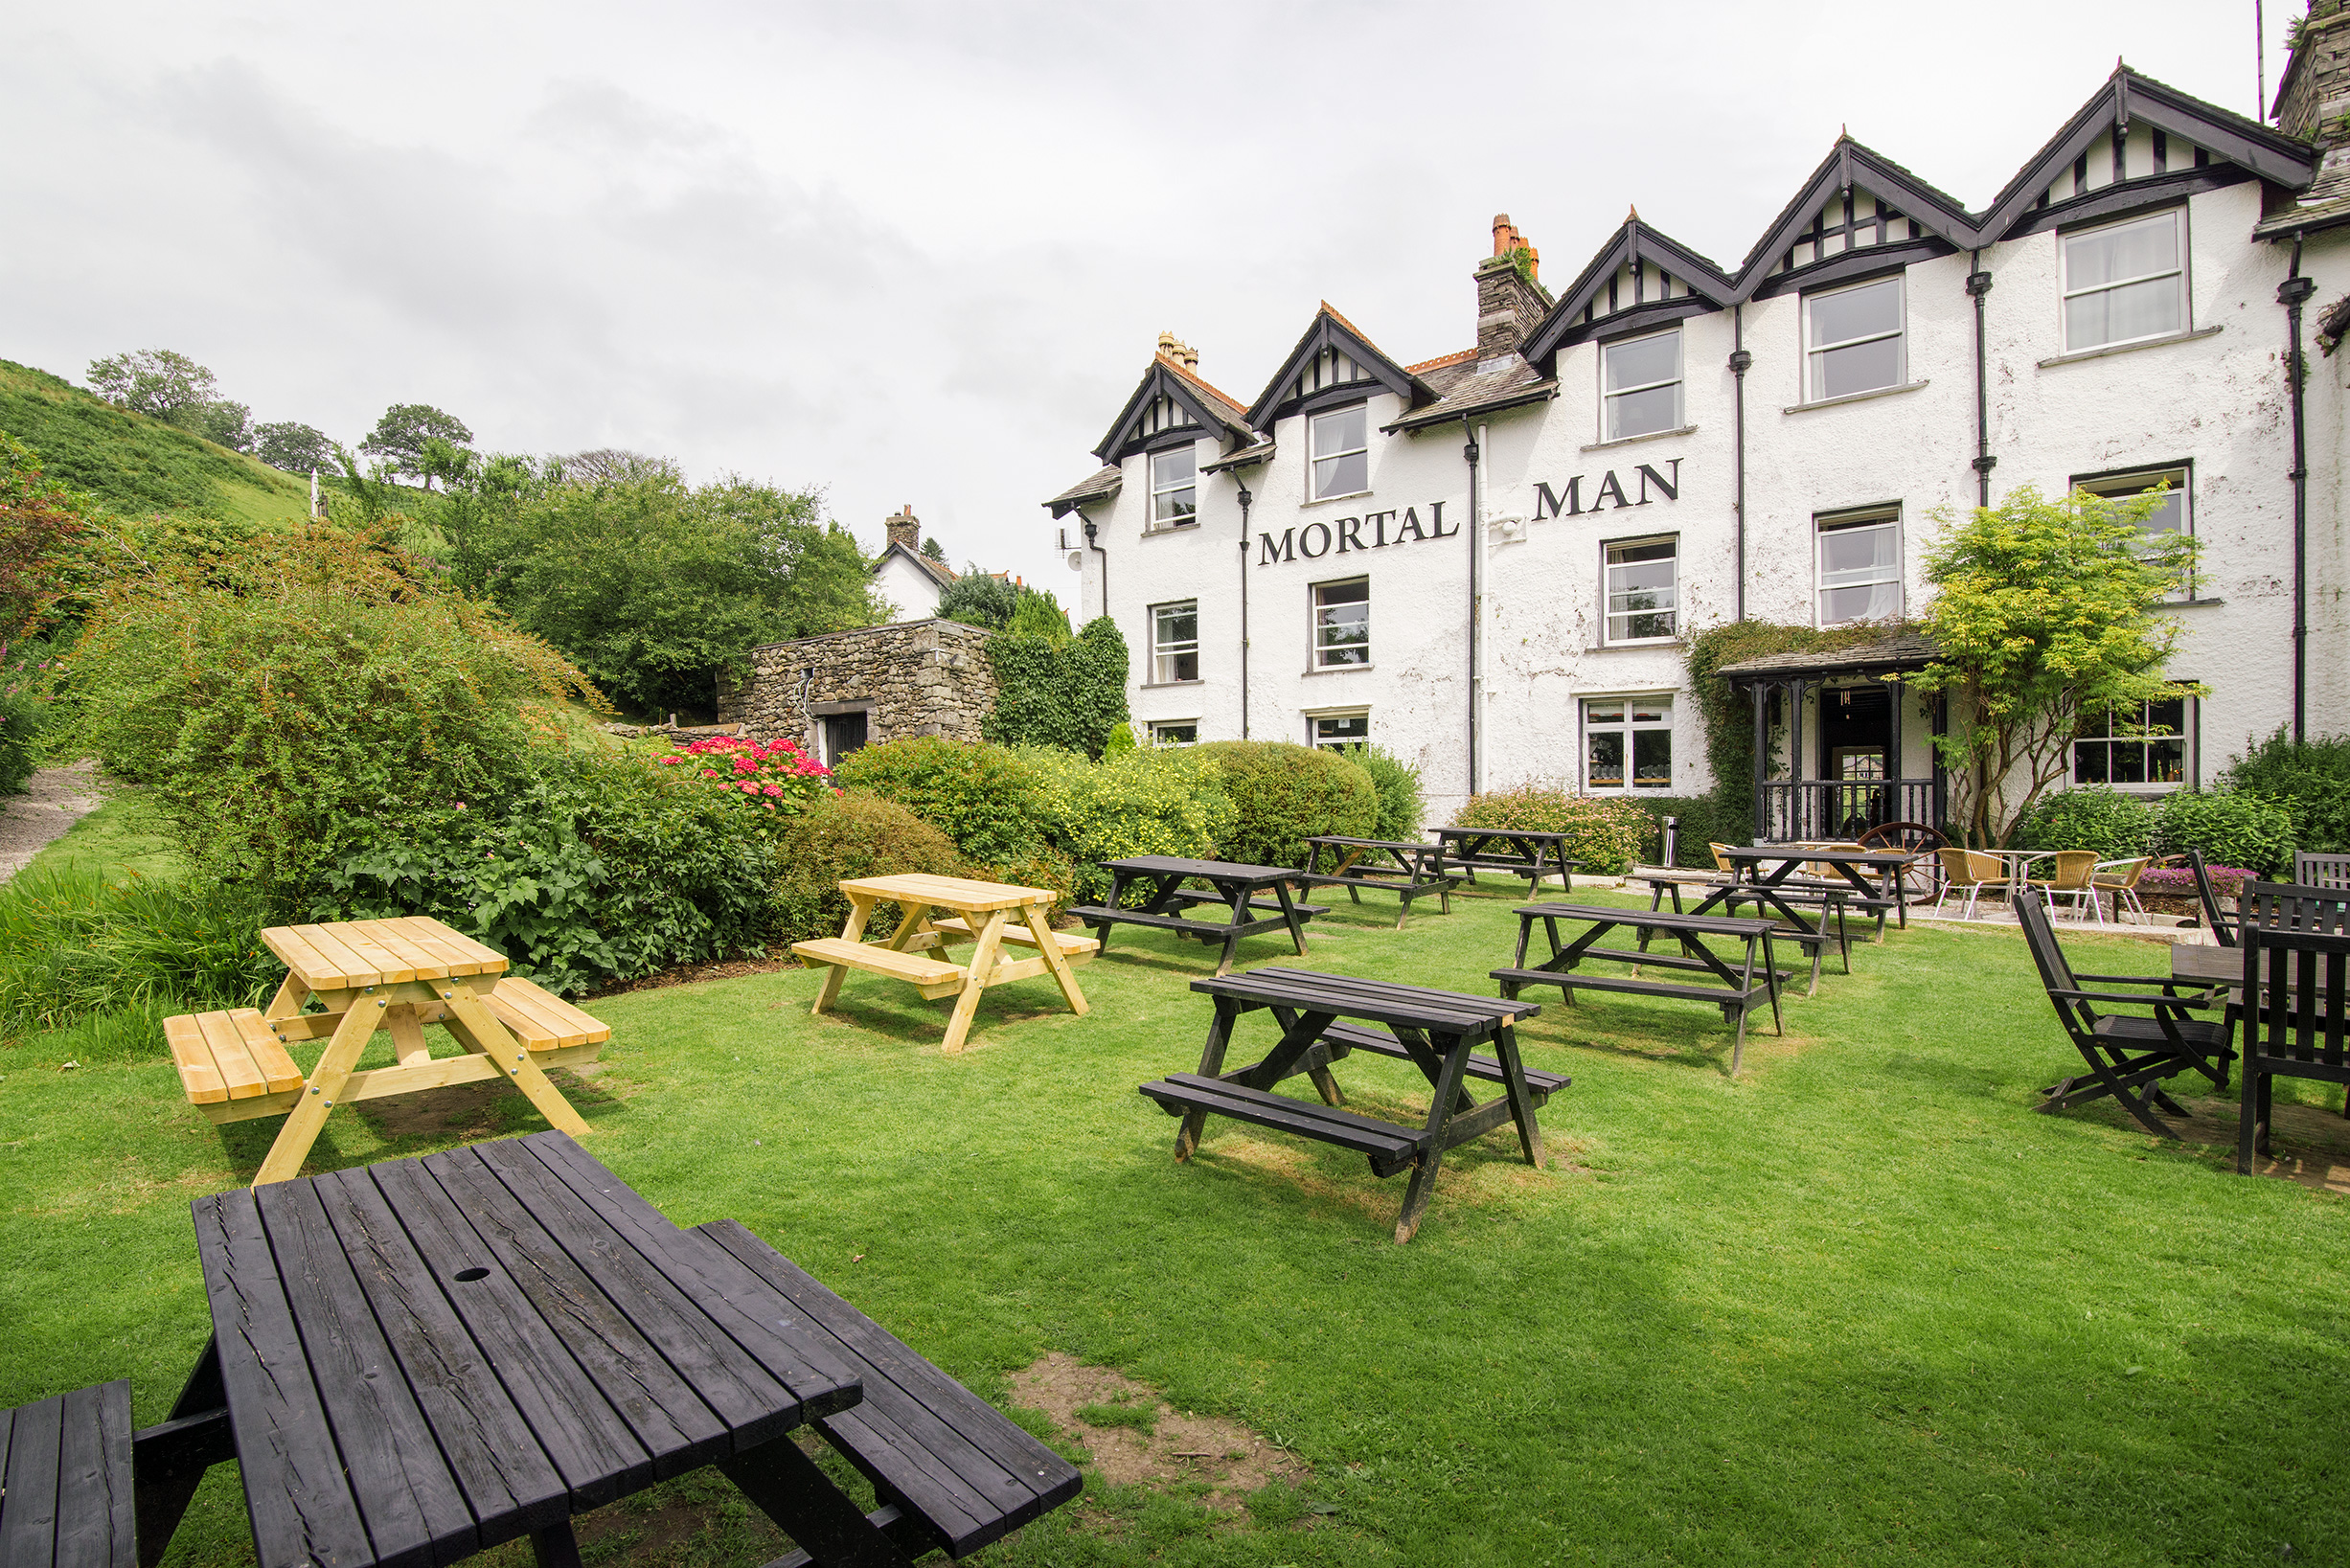 The Mortal Man Pub in Troutbeck, Lake District, United Kingdom